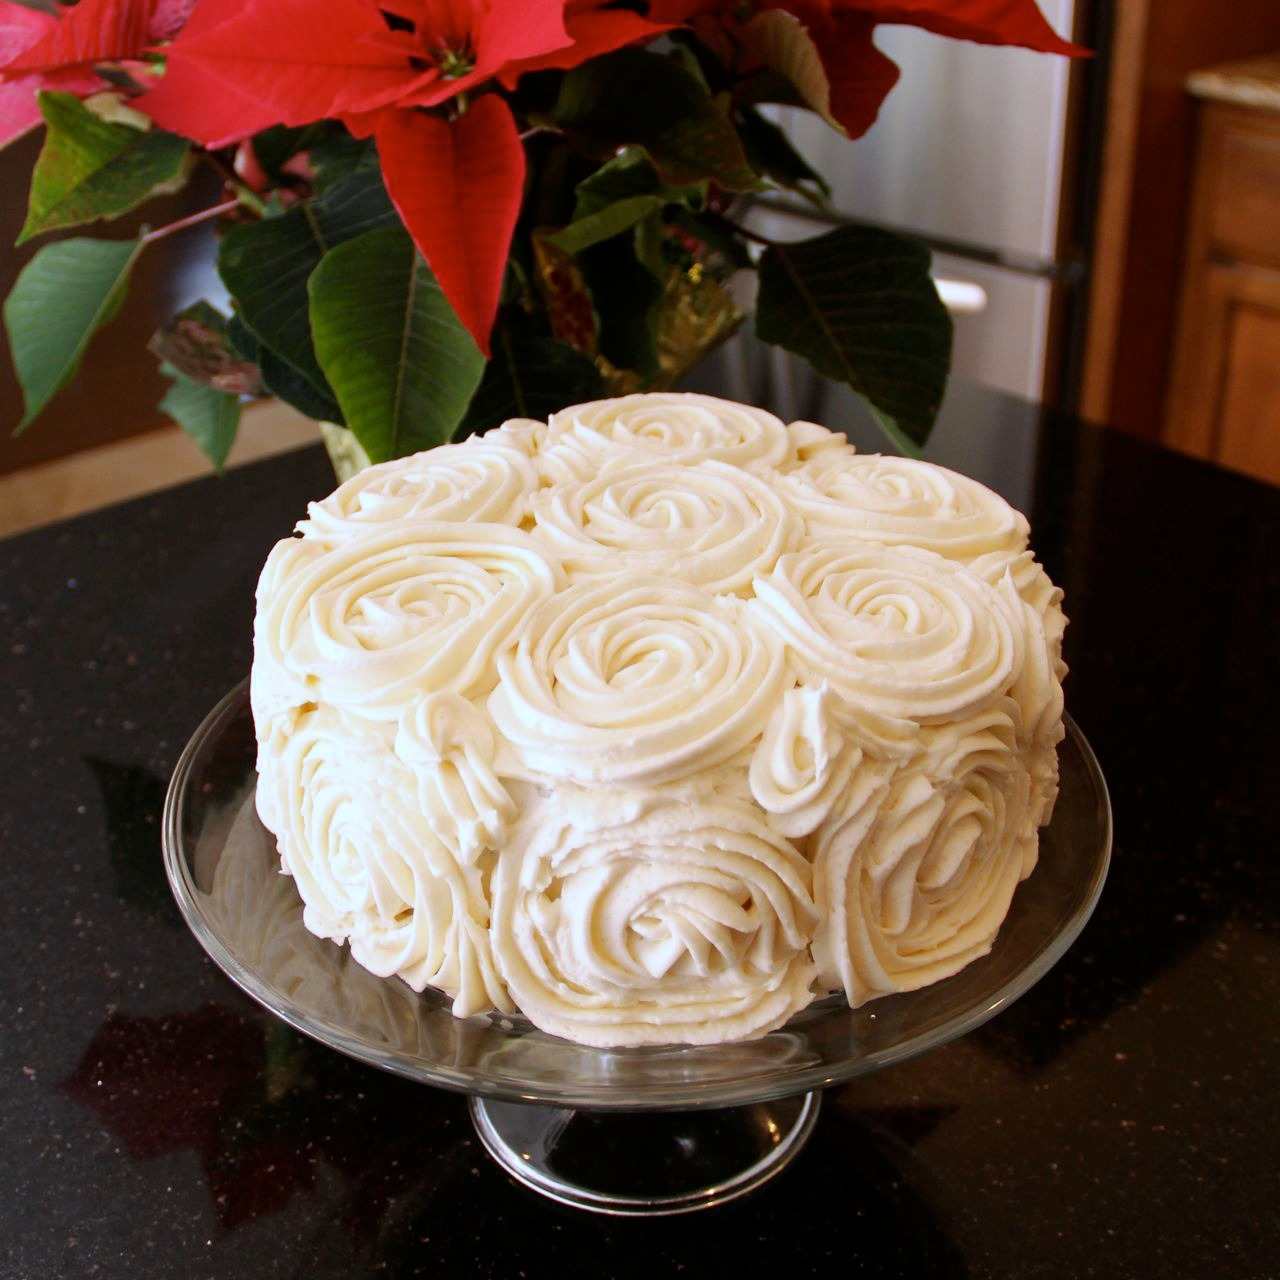 Shower Of Roses: A Christmas Rose Birthday Cake